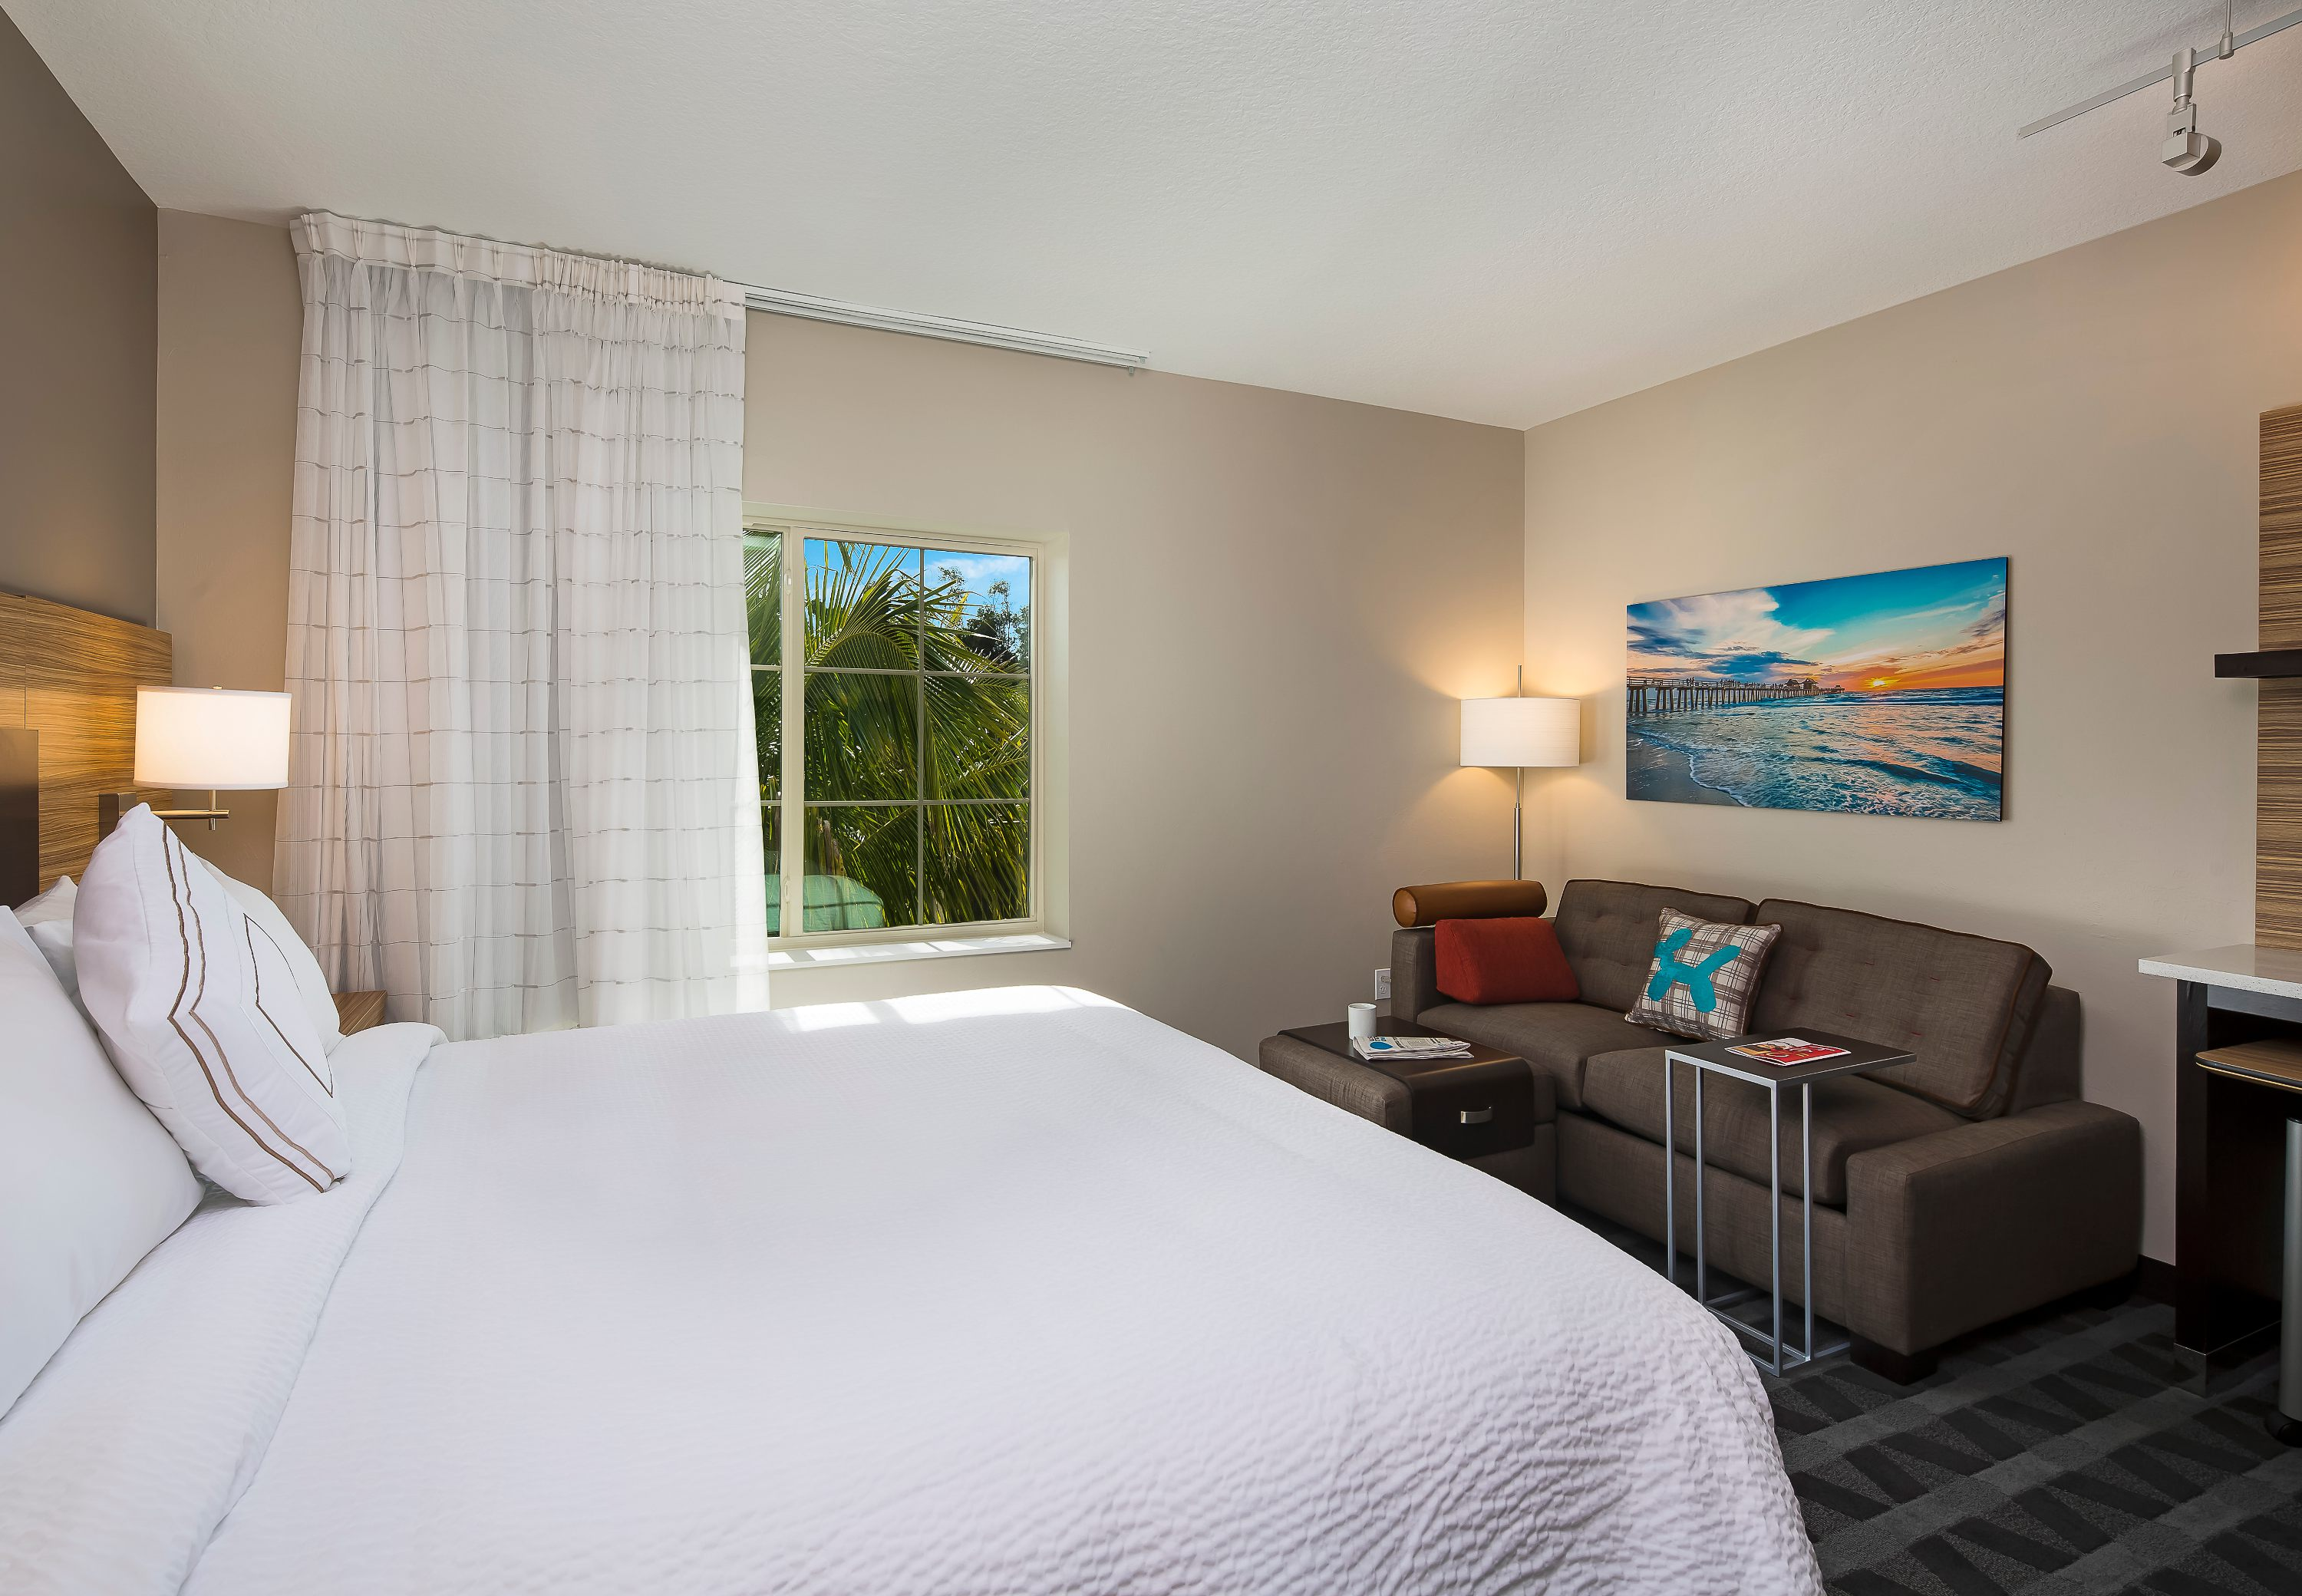 TownePlace Suites by Marriott Fort Myers Estero image 6